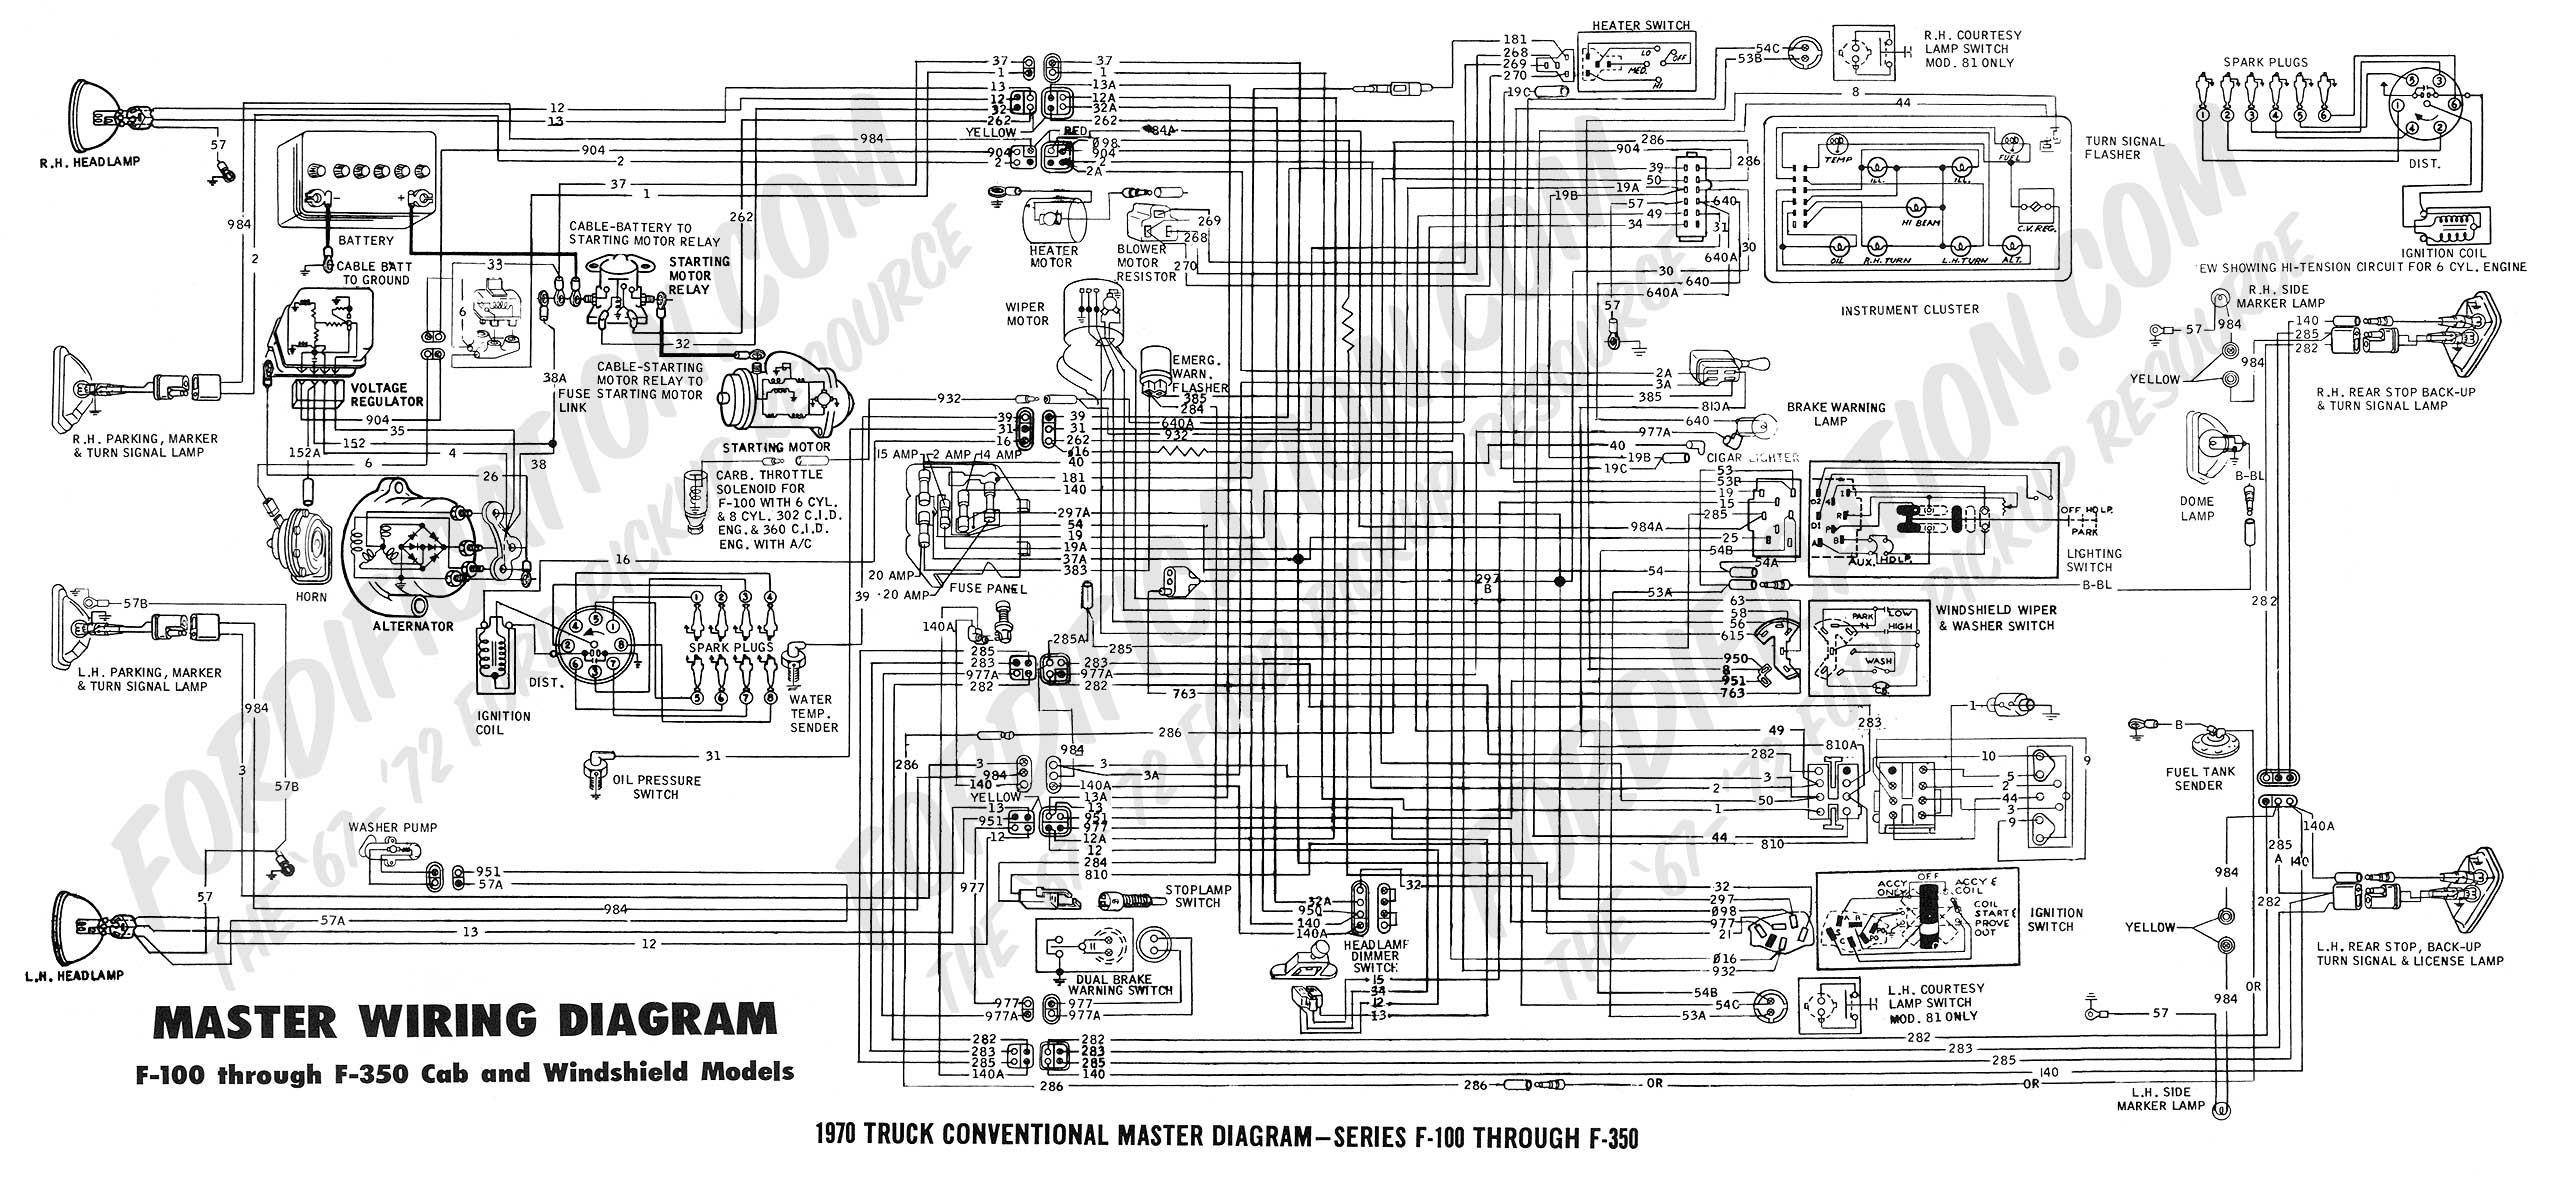 wiring diagram 70_master ford truck technical drawings and schematics section h wiring Ford F-250 Wiring Diagram at alyssarenee.co